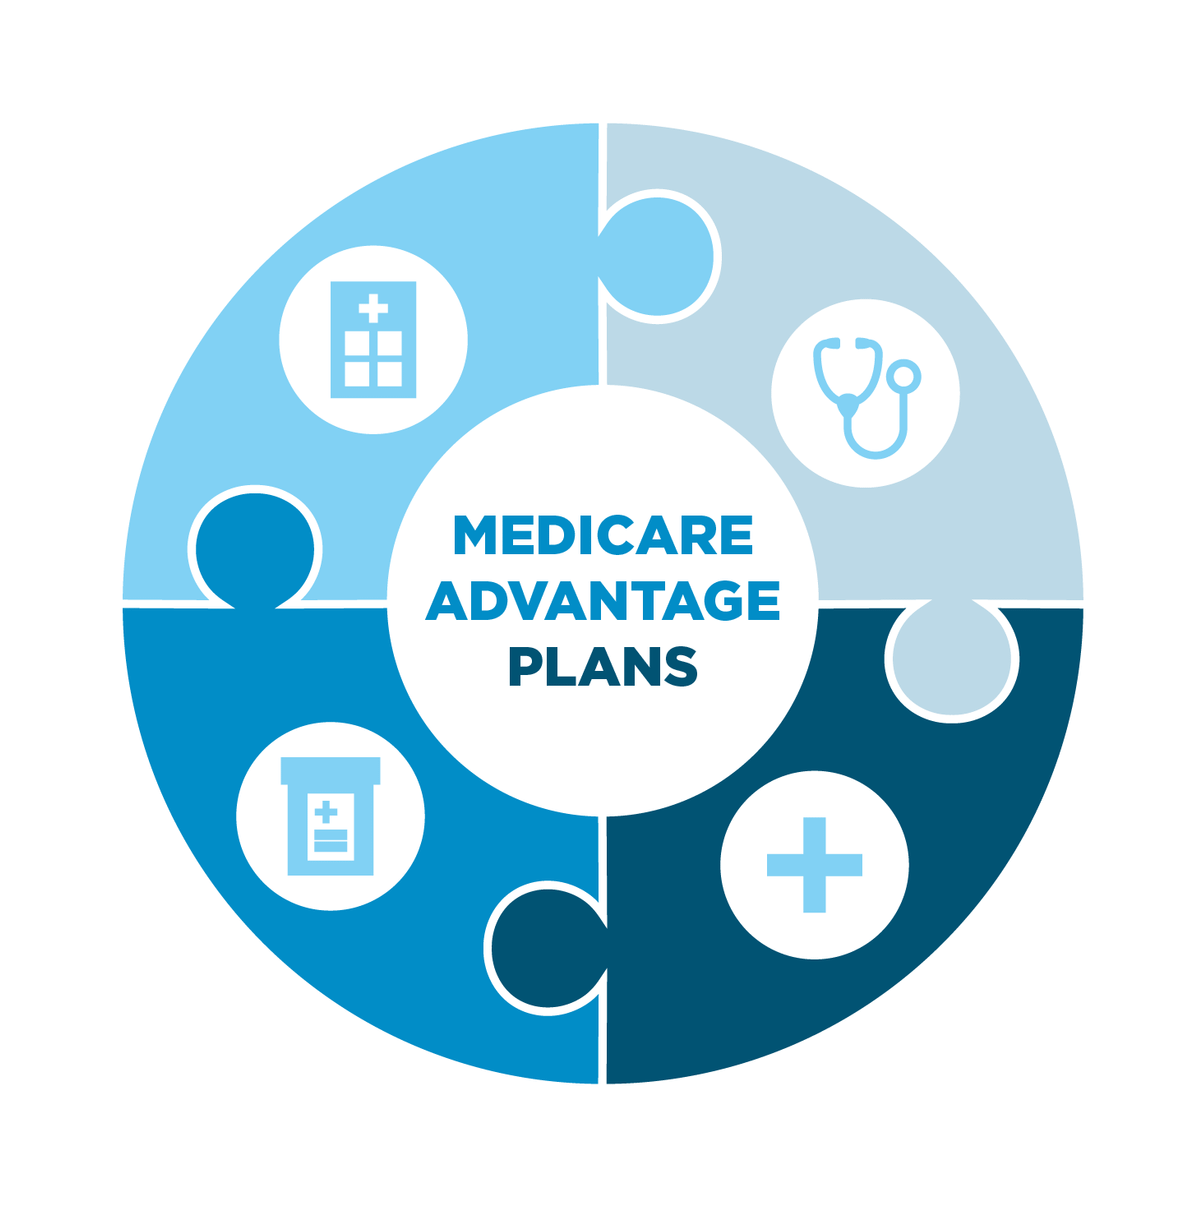 How to Grow Your Home Care Business with Medicare Advantage Partnerships    The Rosemark System